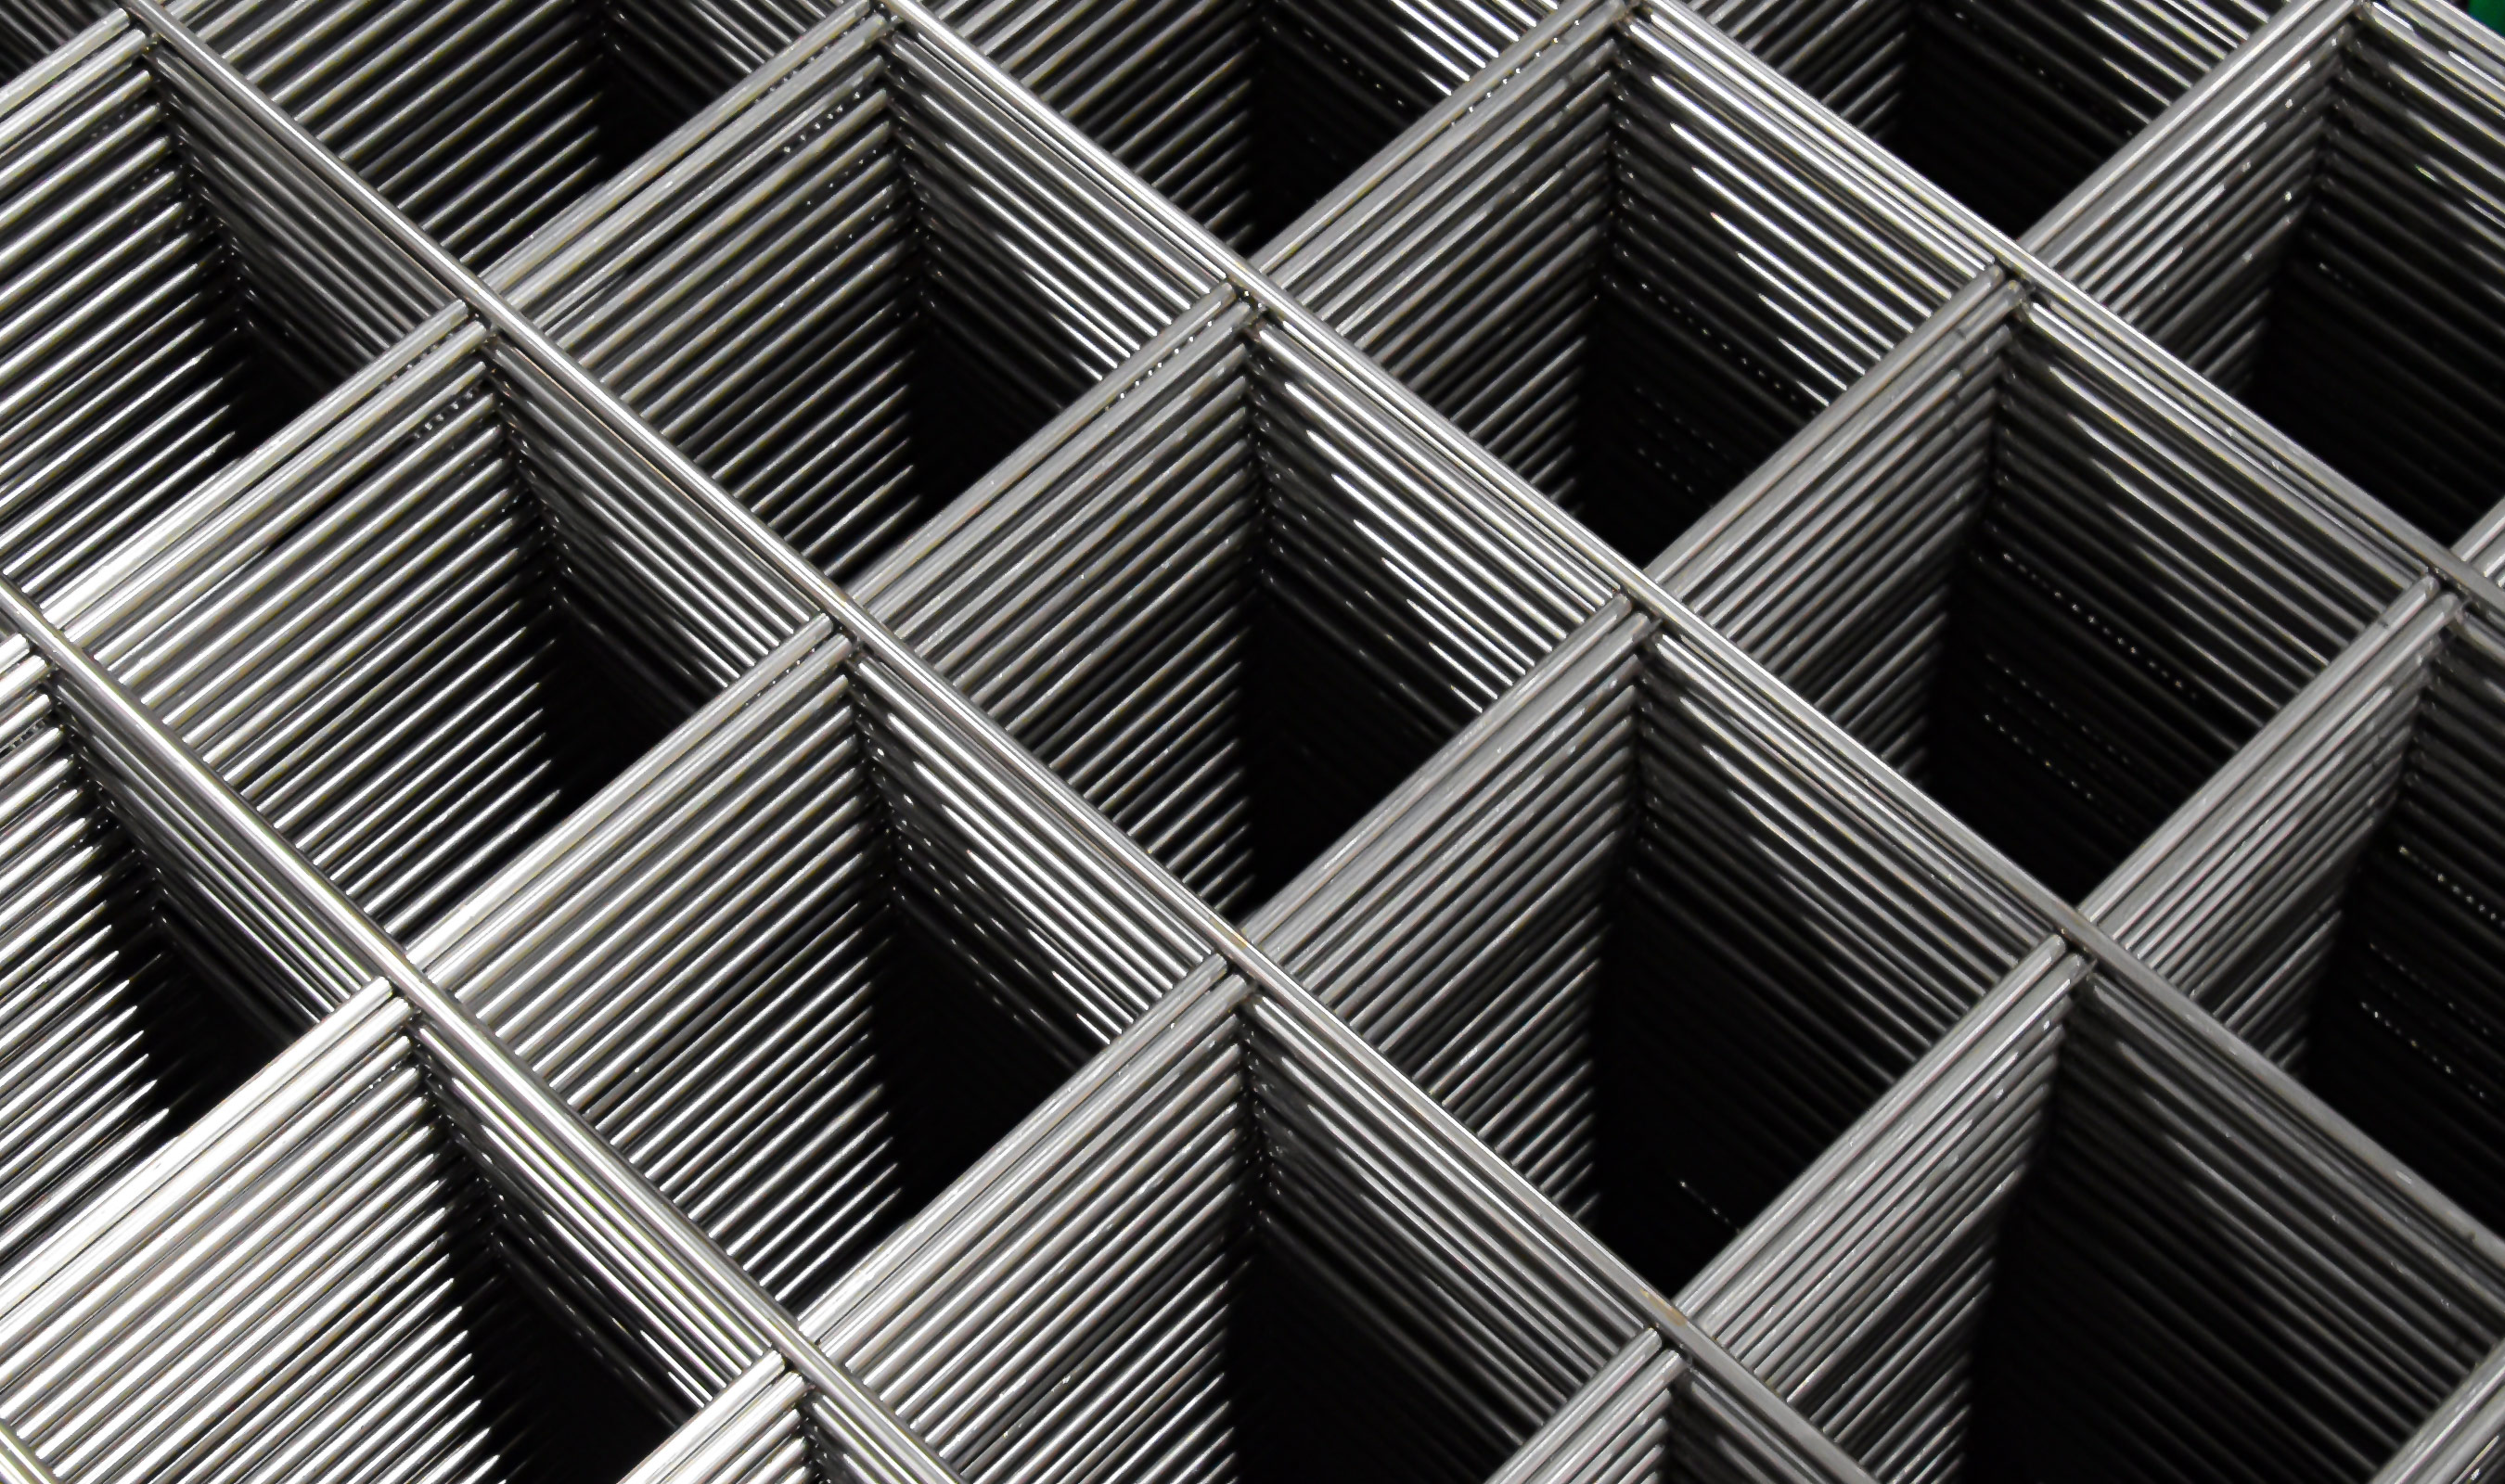 WD-031 Stainless Steel Welded Wire Mesh